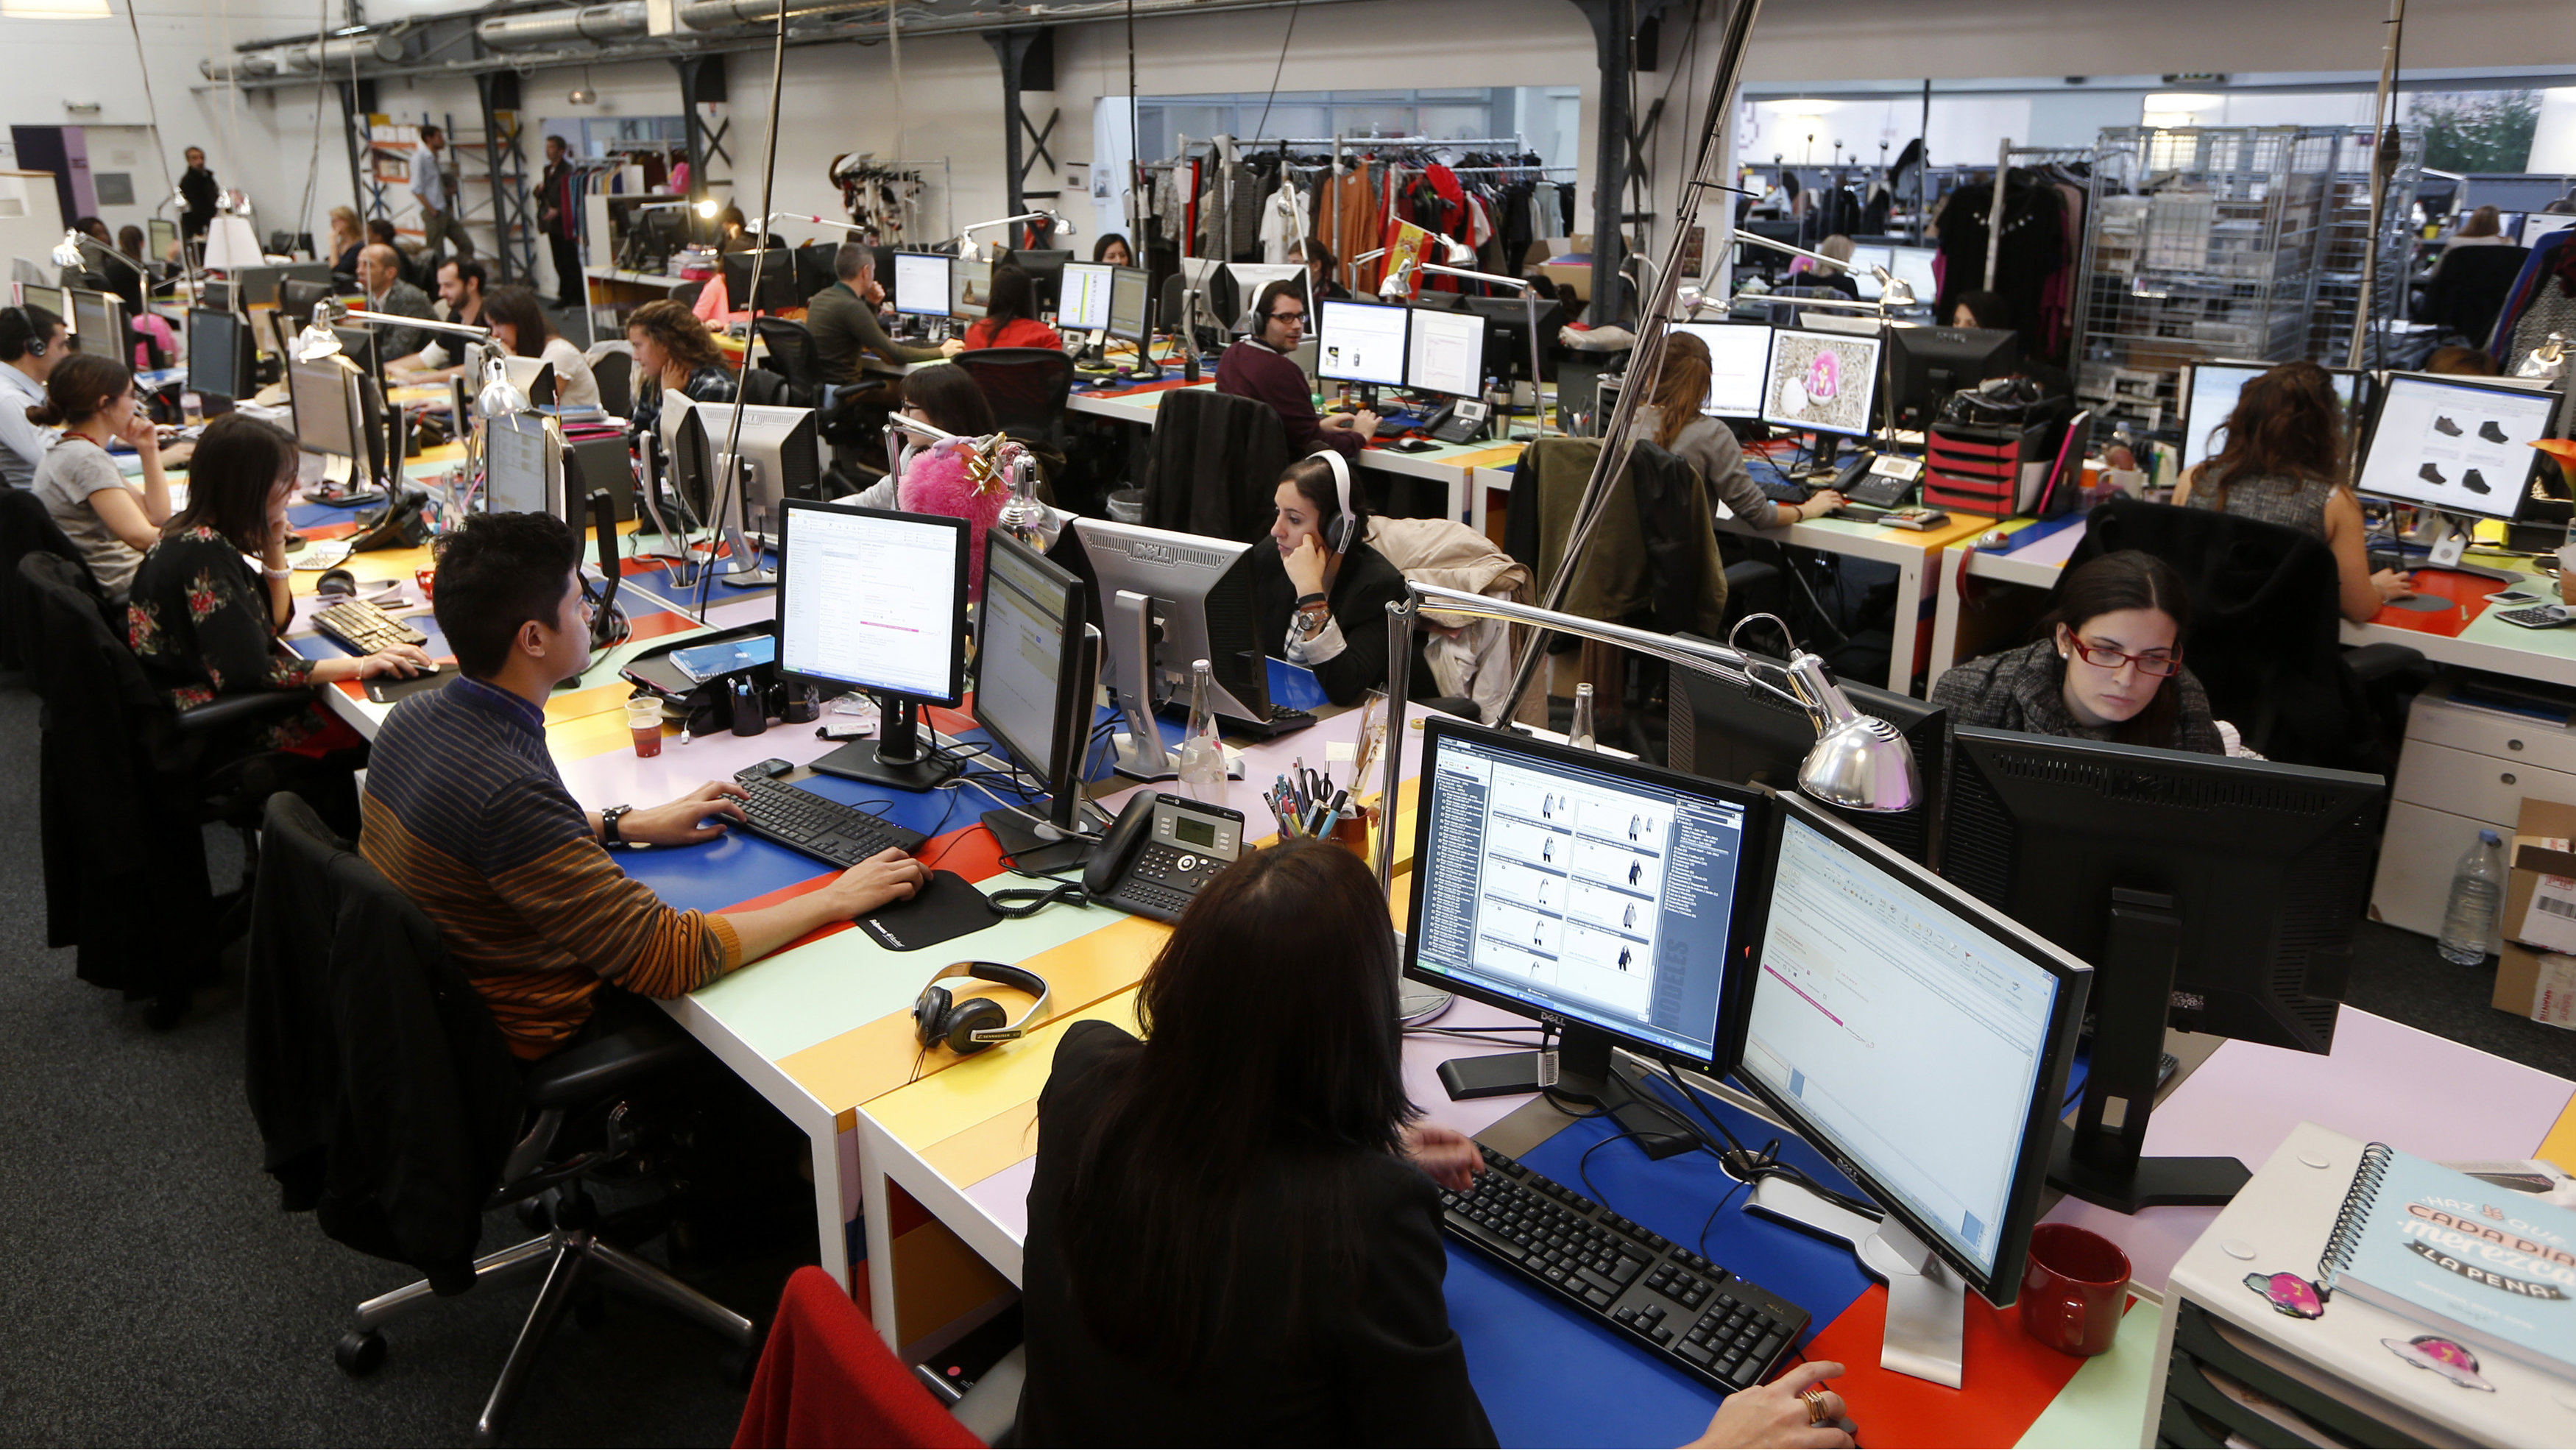 Employees work in front of their computers at the Vente-Privee.com company's headquarters in Saint-Denis near Paris October 24, 2013.